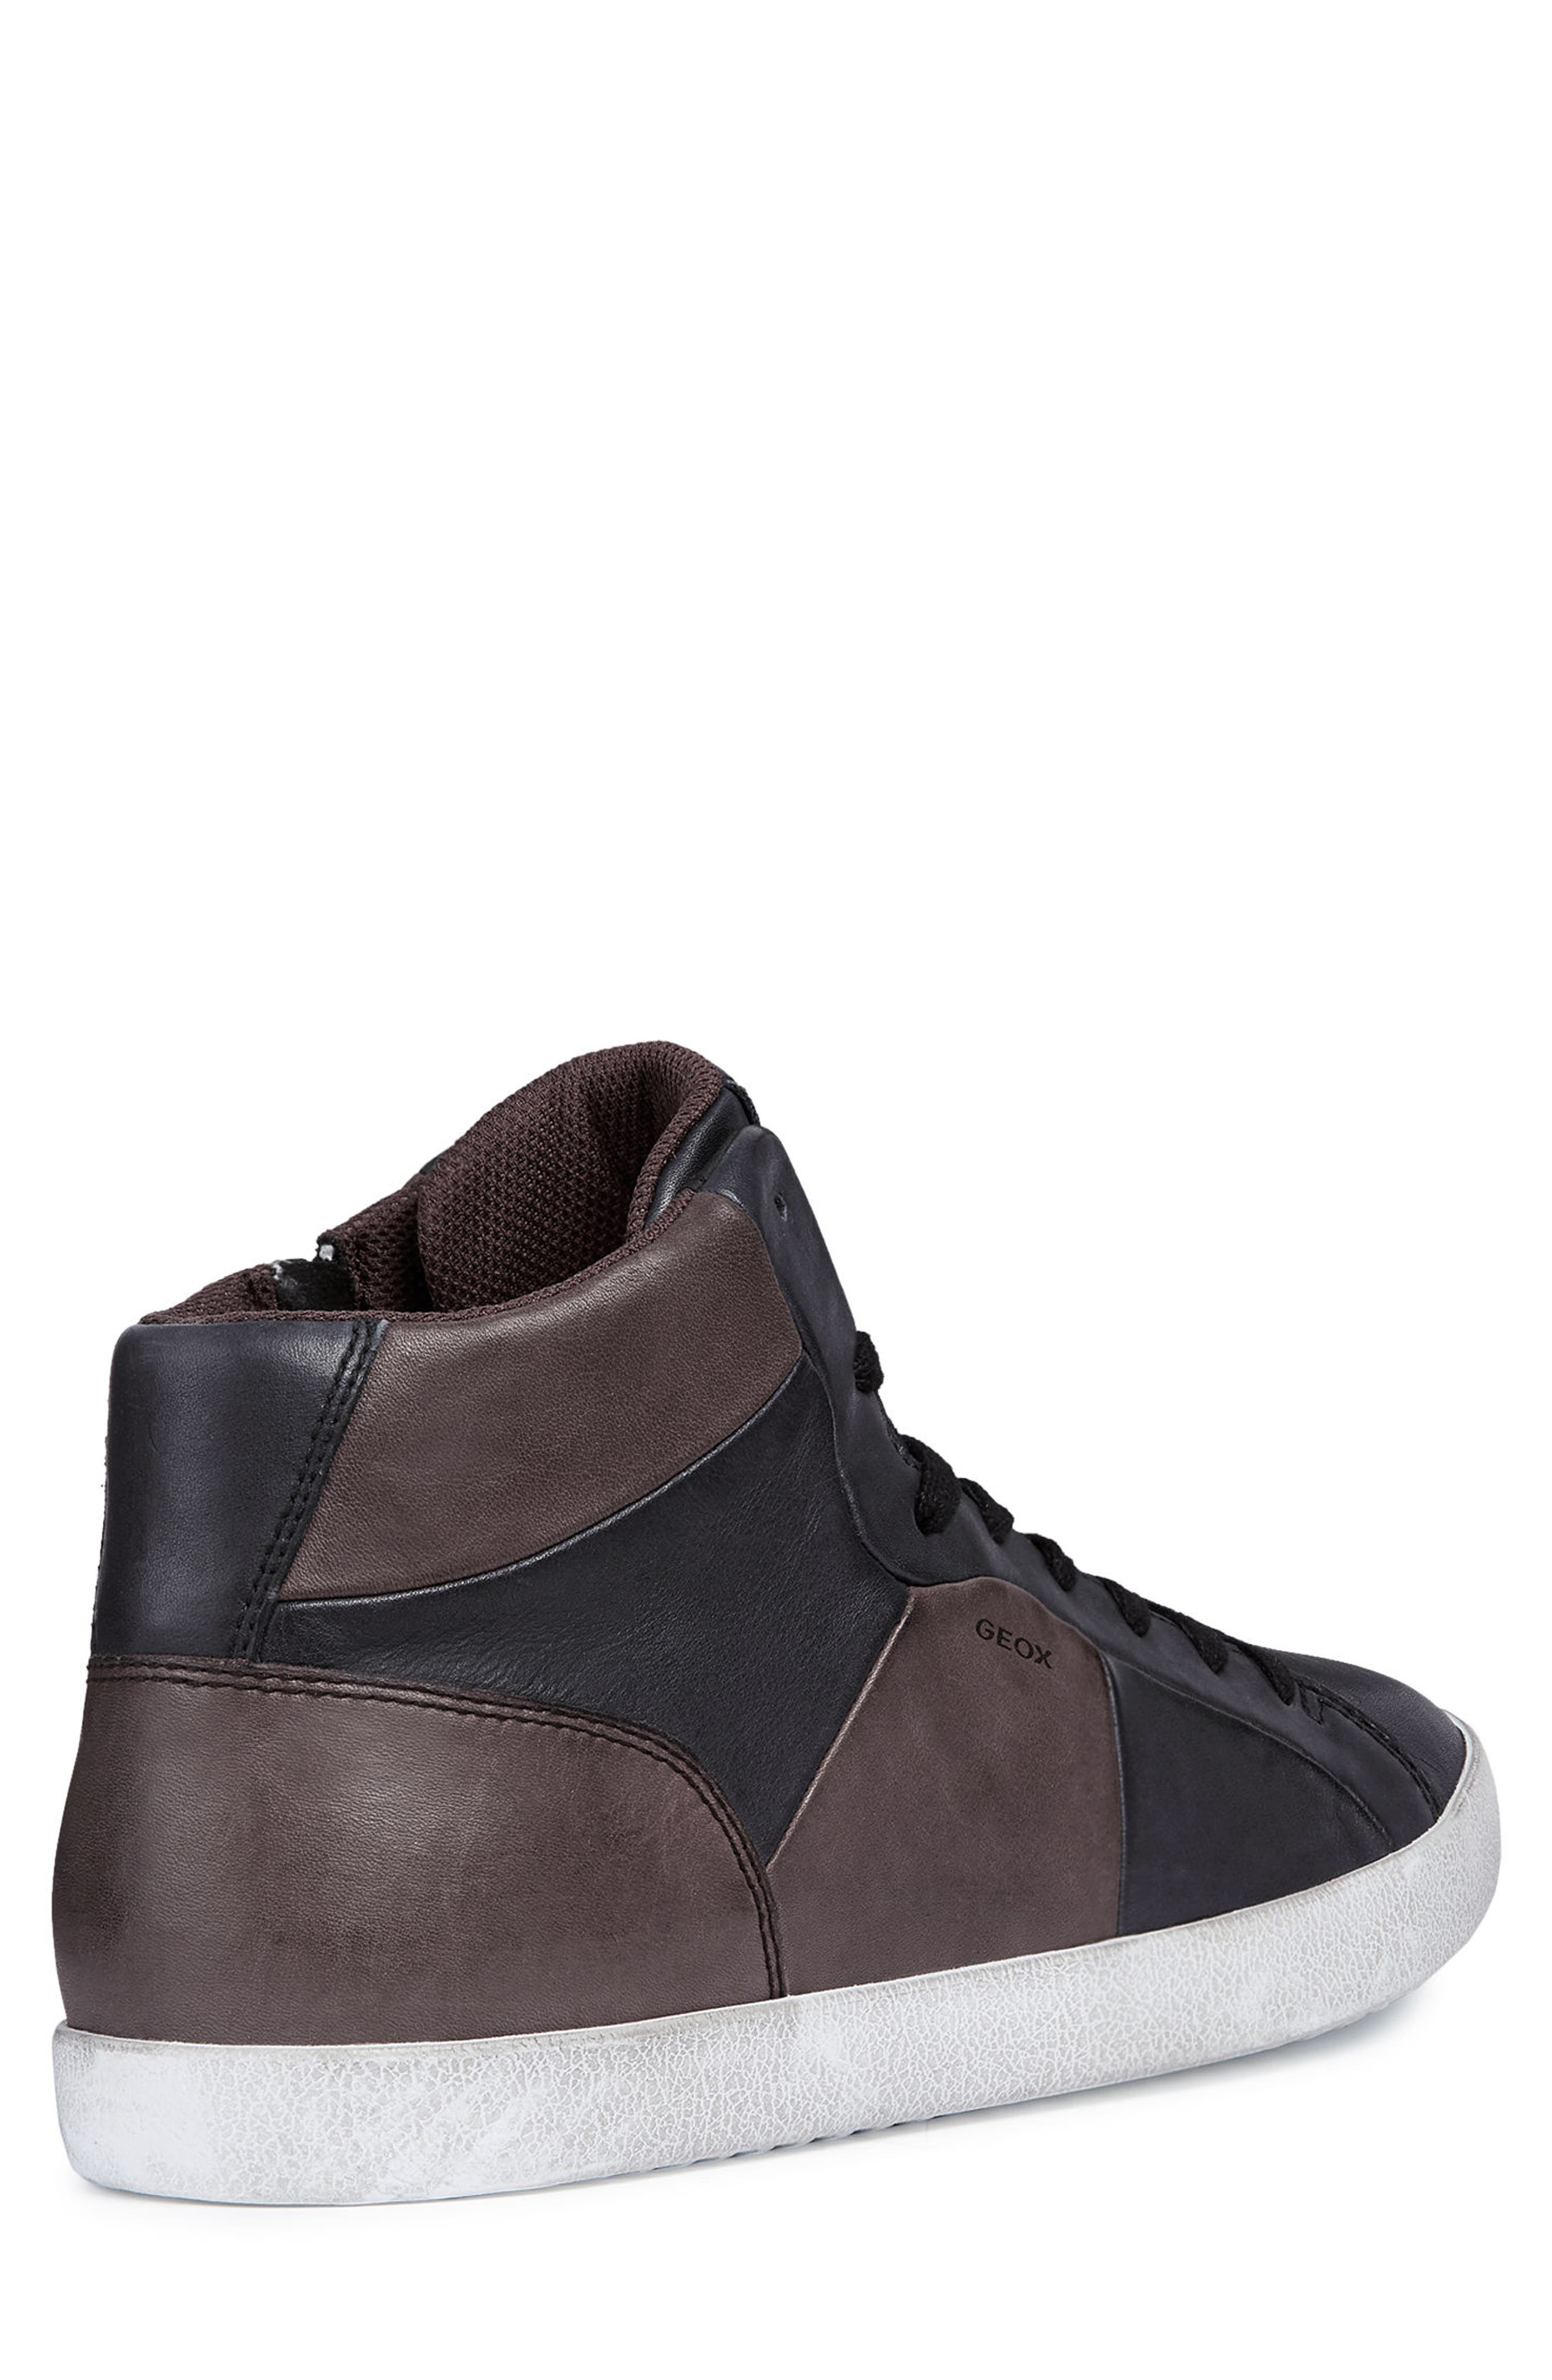 Smart 84 High Top Sneaker,                             Alternate thumbnail 2, color,                             BLACK/ COFFEE LEATHER